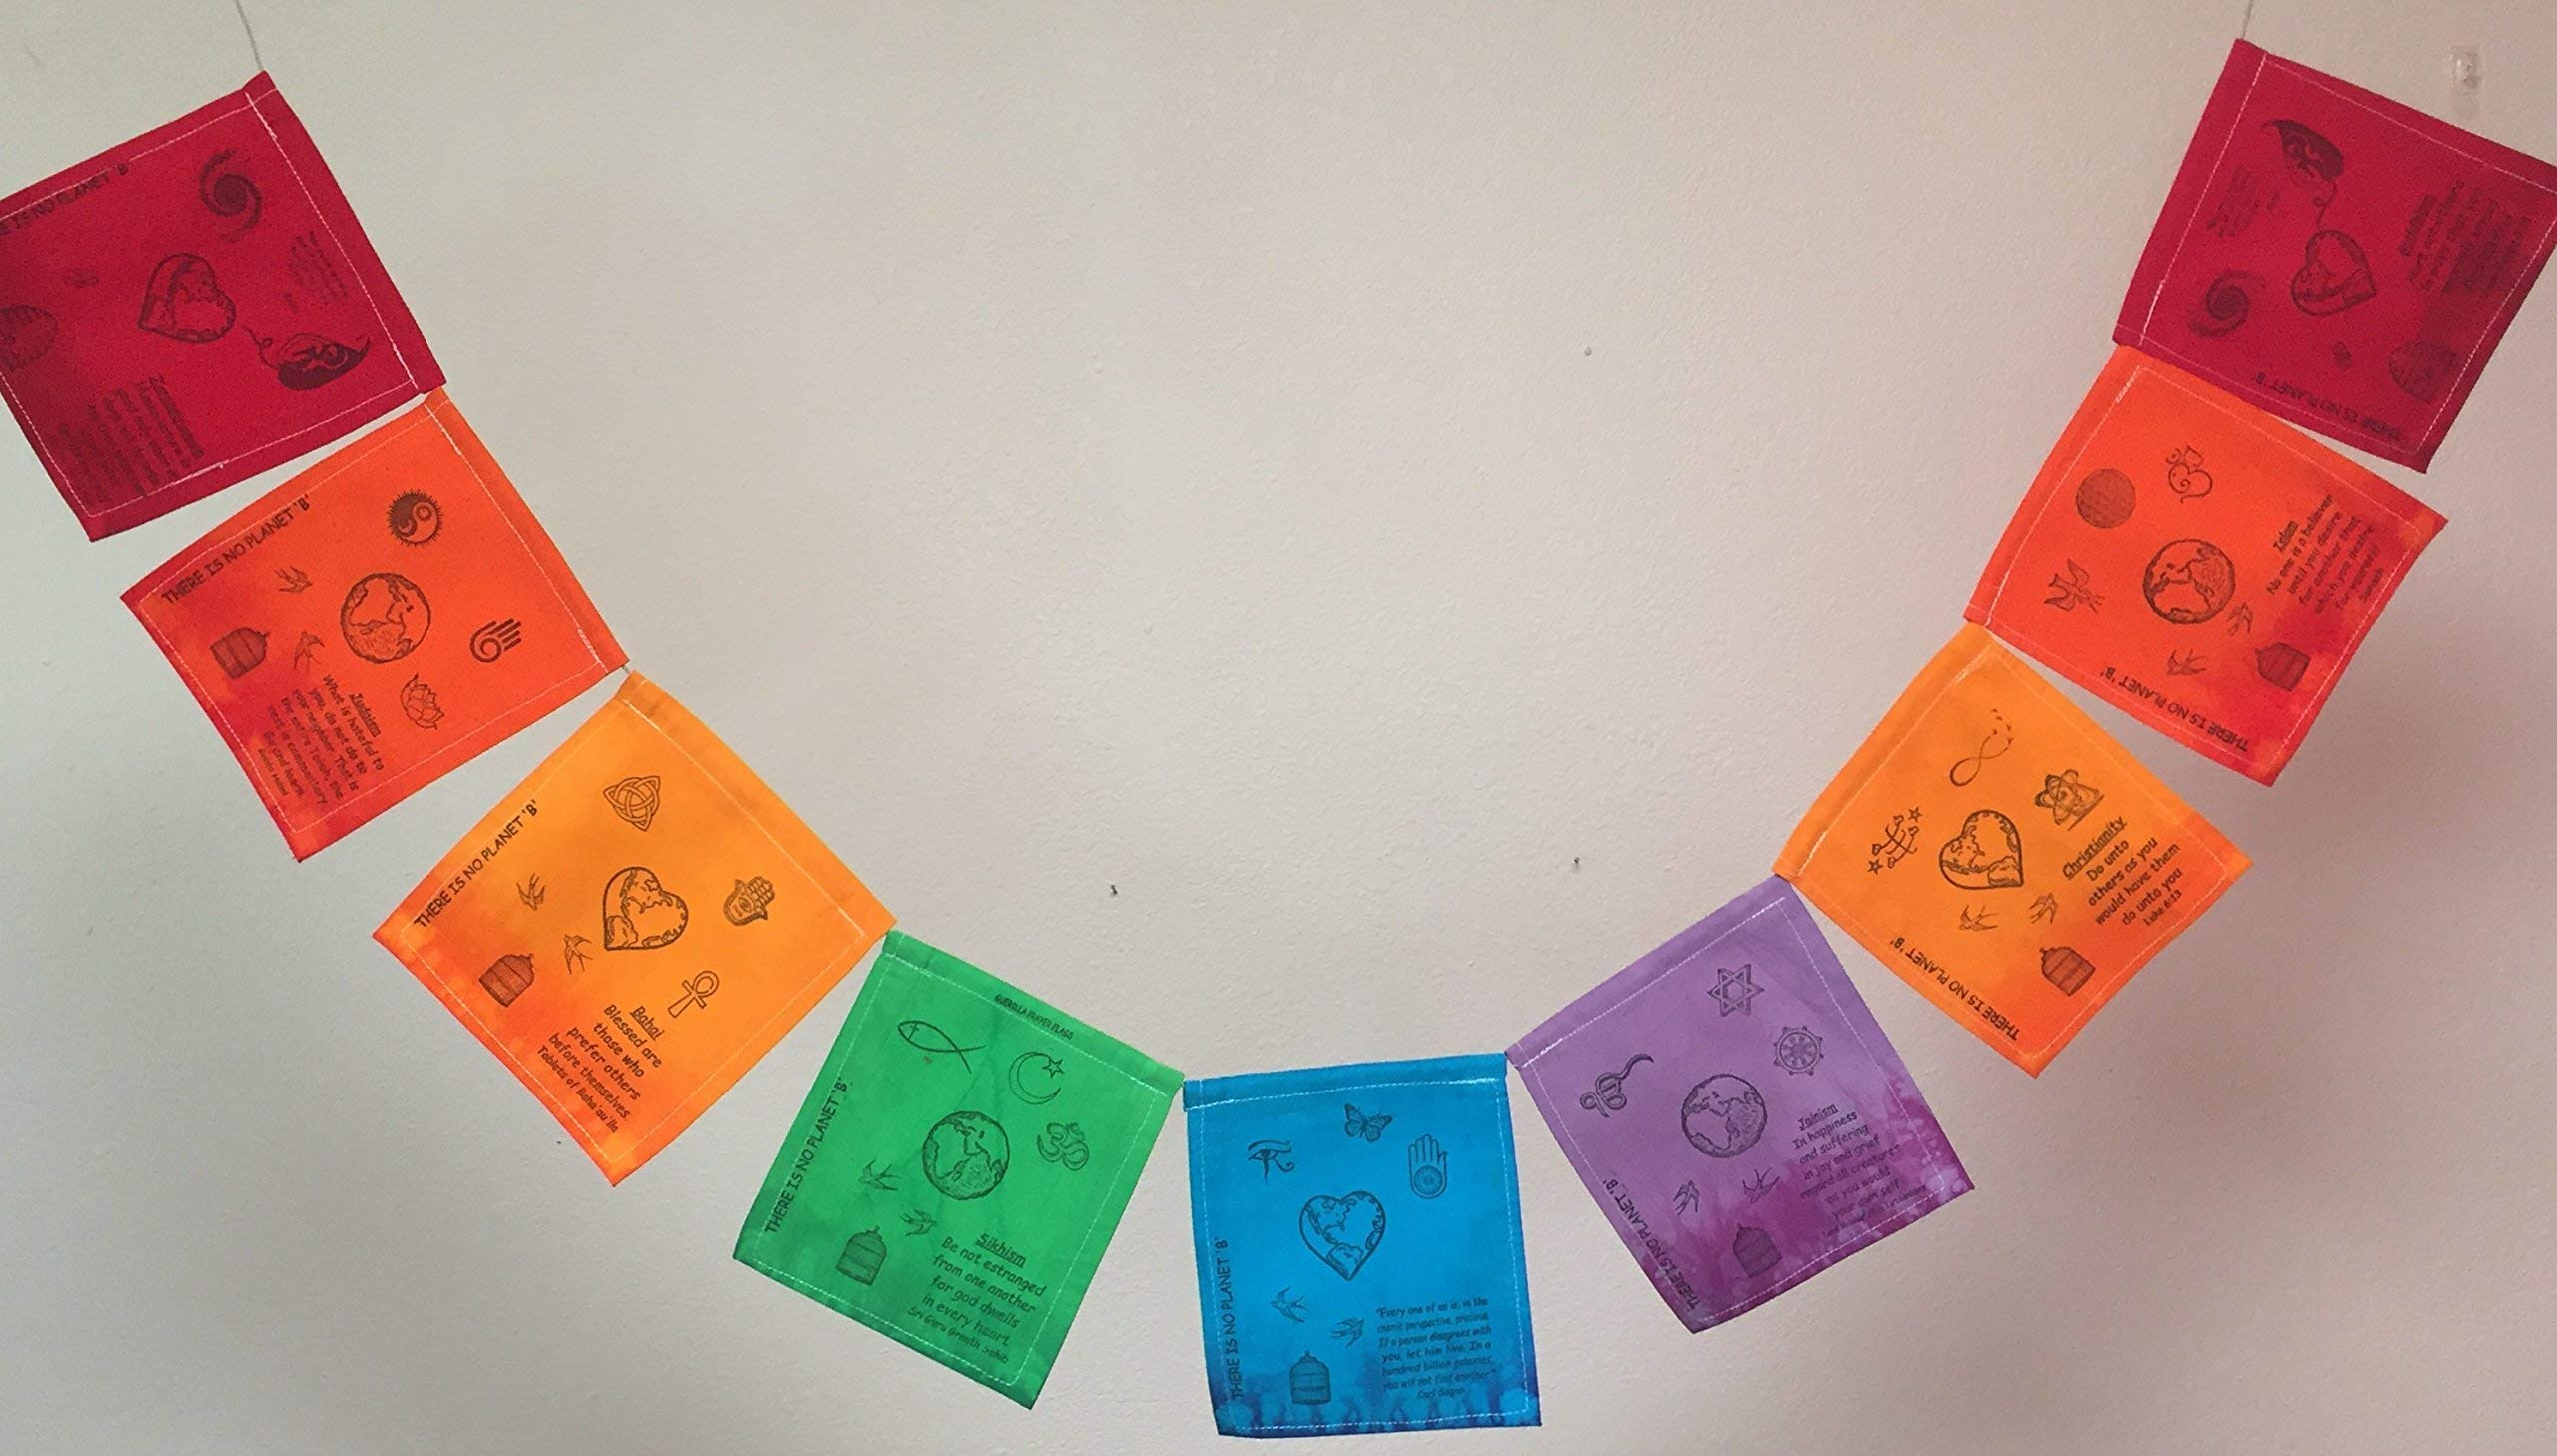 Coexistence Prayer Flag. All proceeds to families in Mexico.